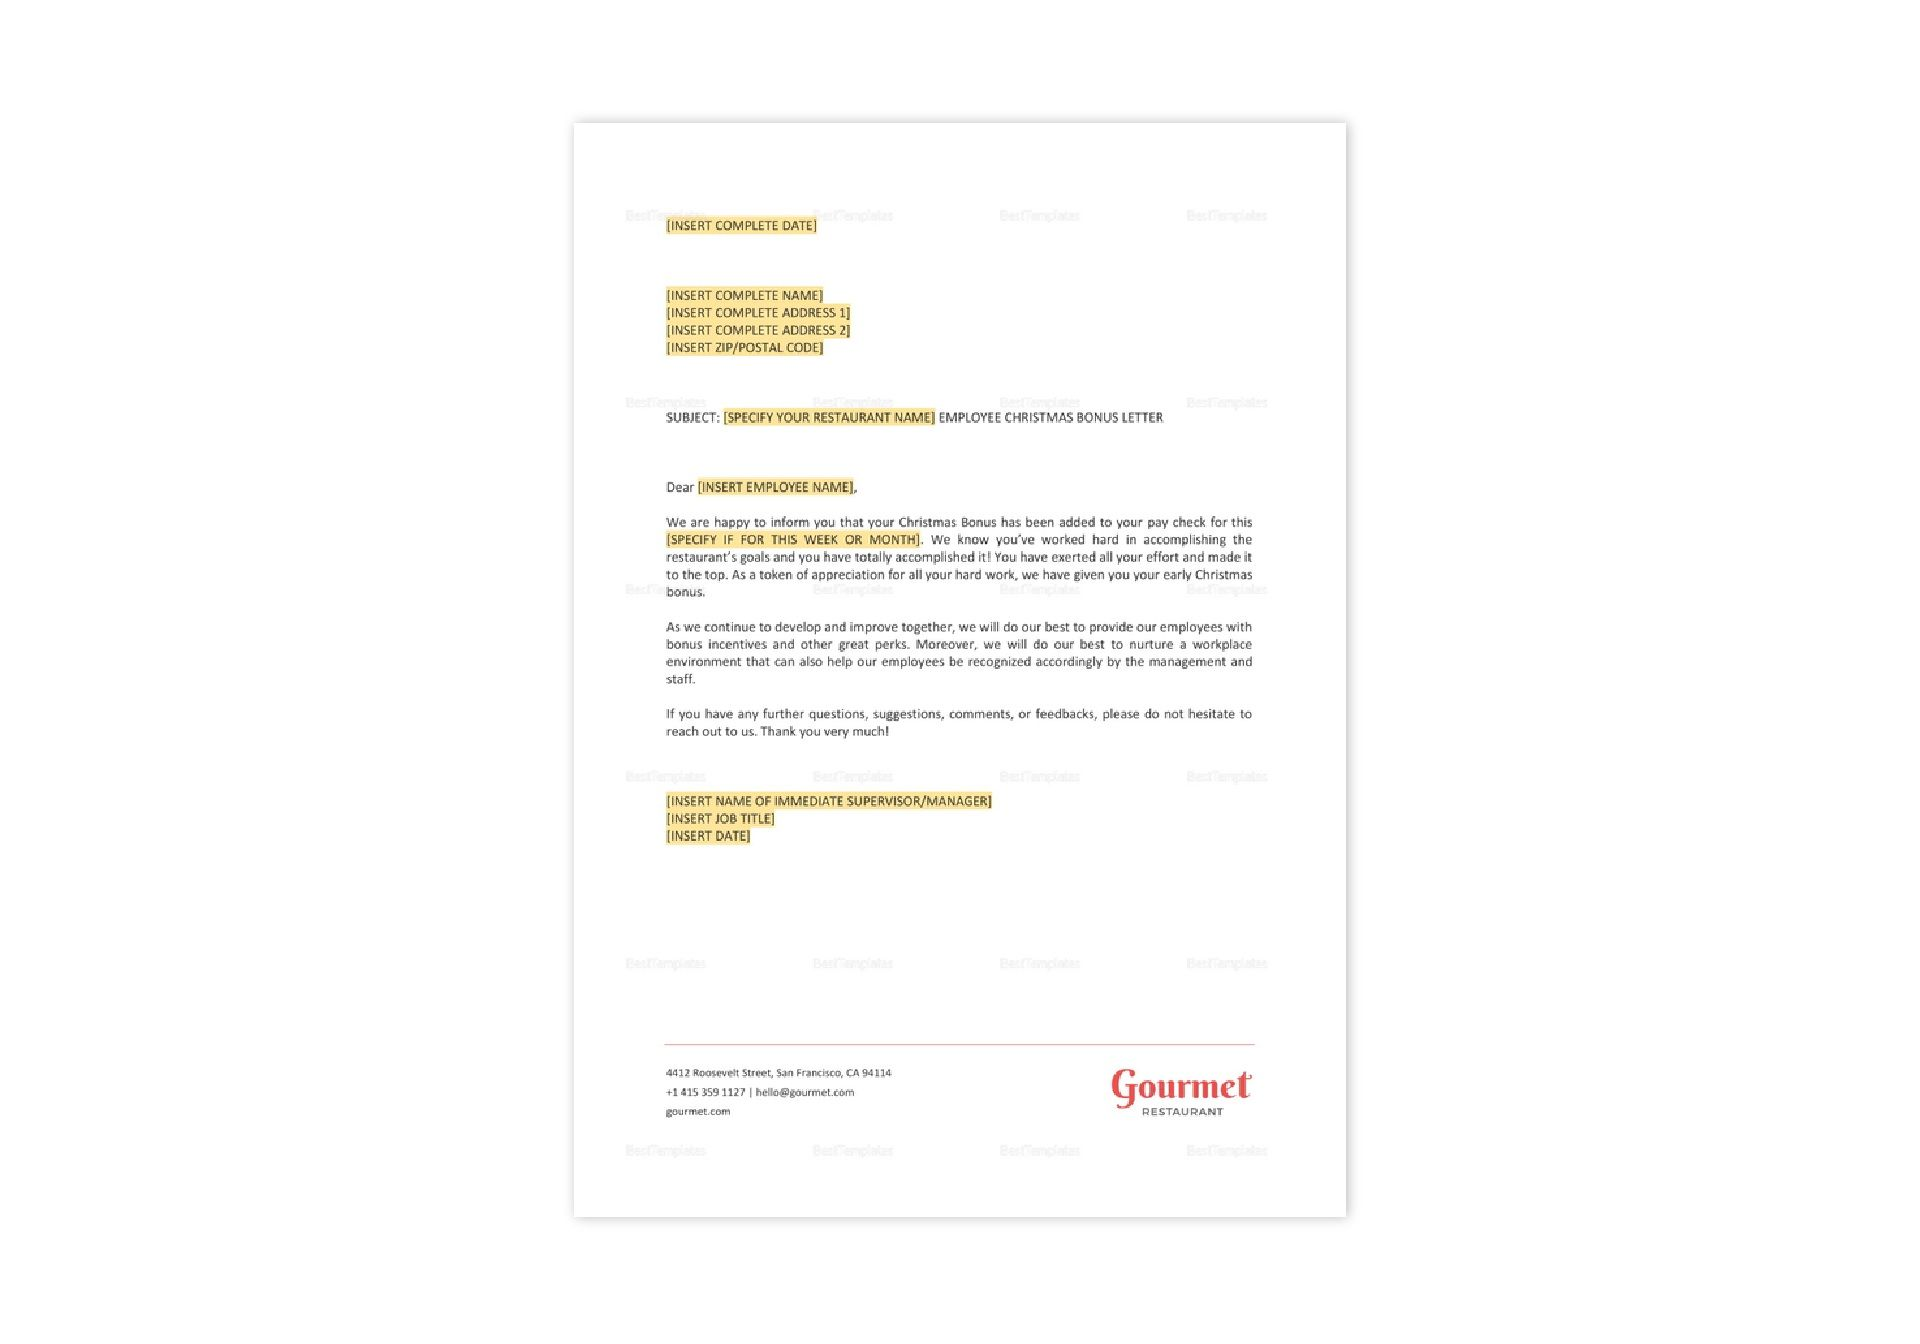 Restaurant Employee Christmas Bonus Letter Template in